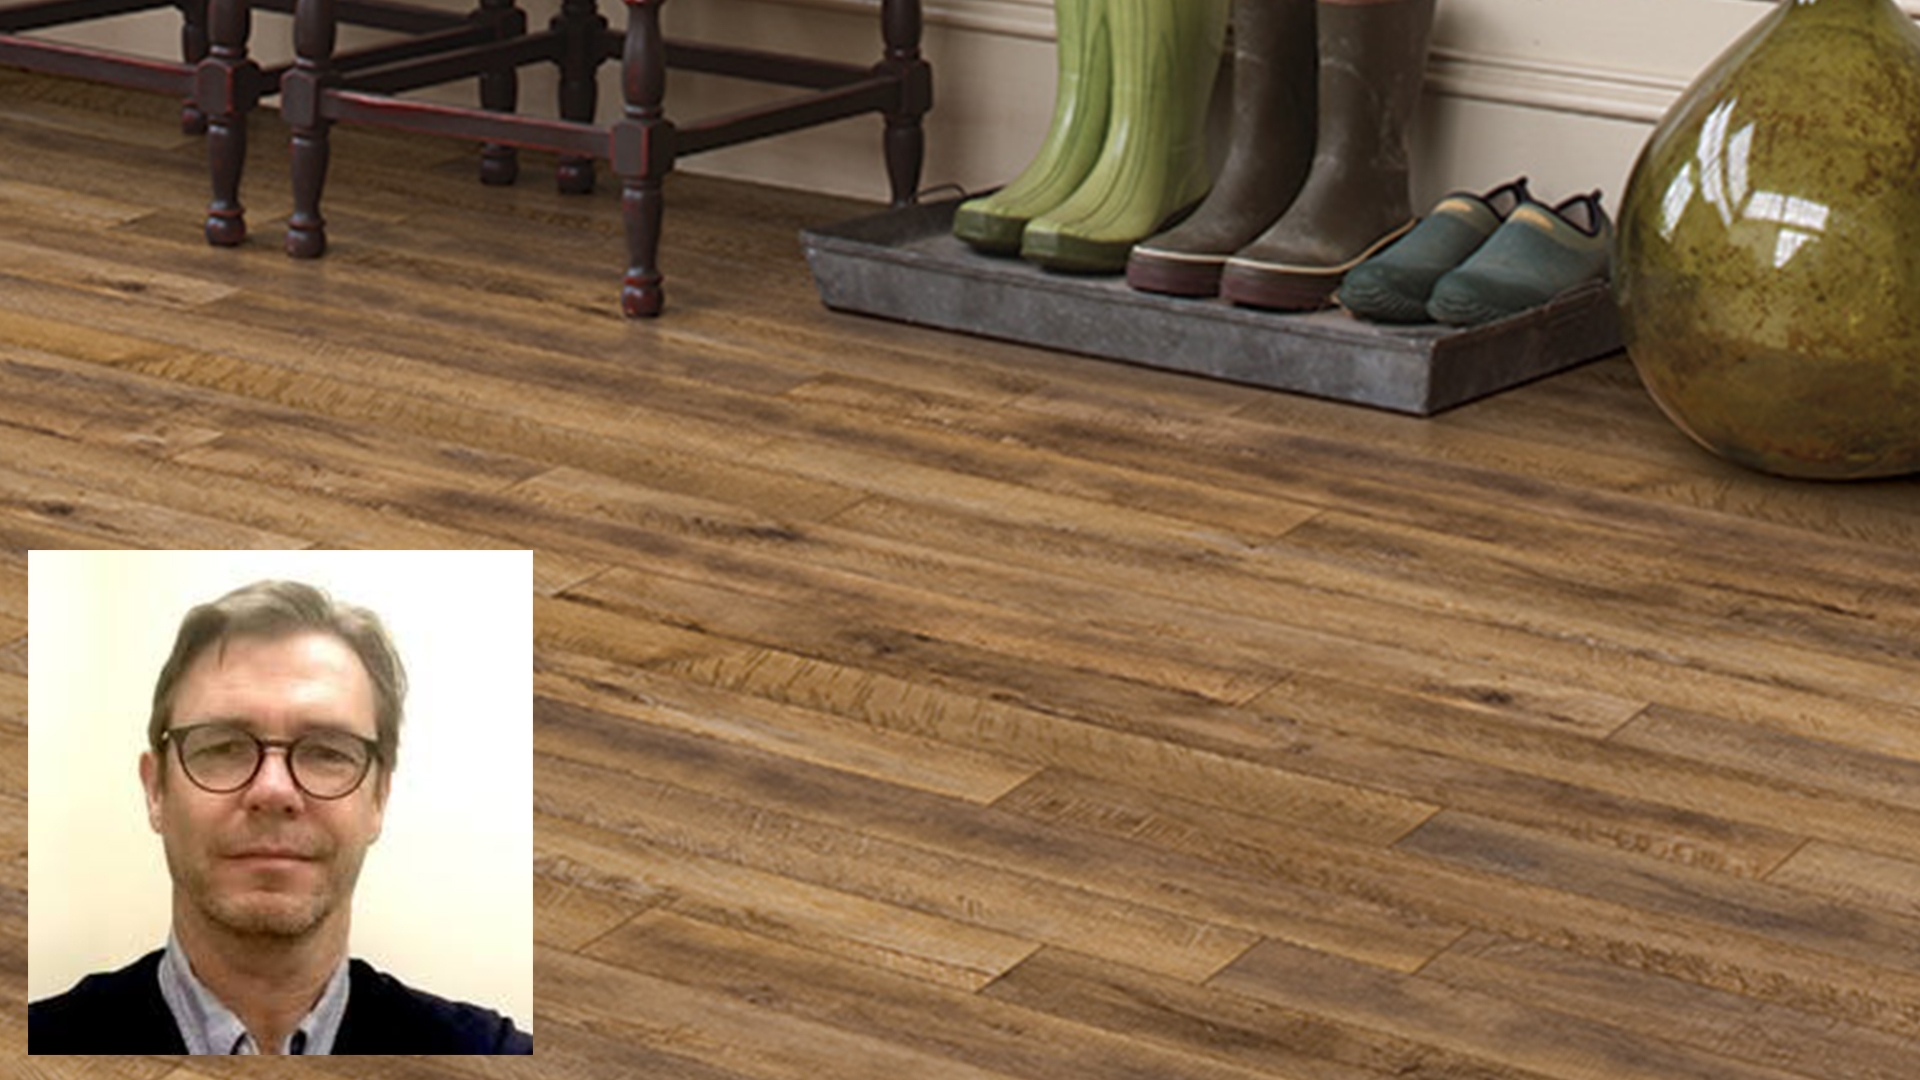 Chris Maskell: The truth about LVT floors